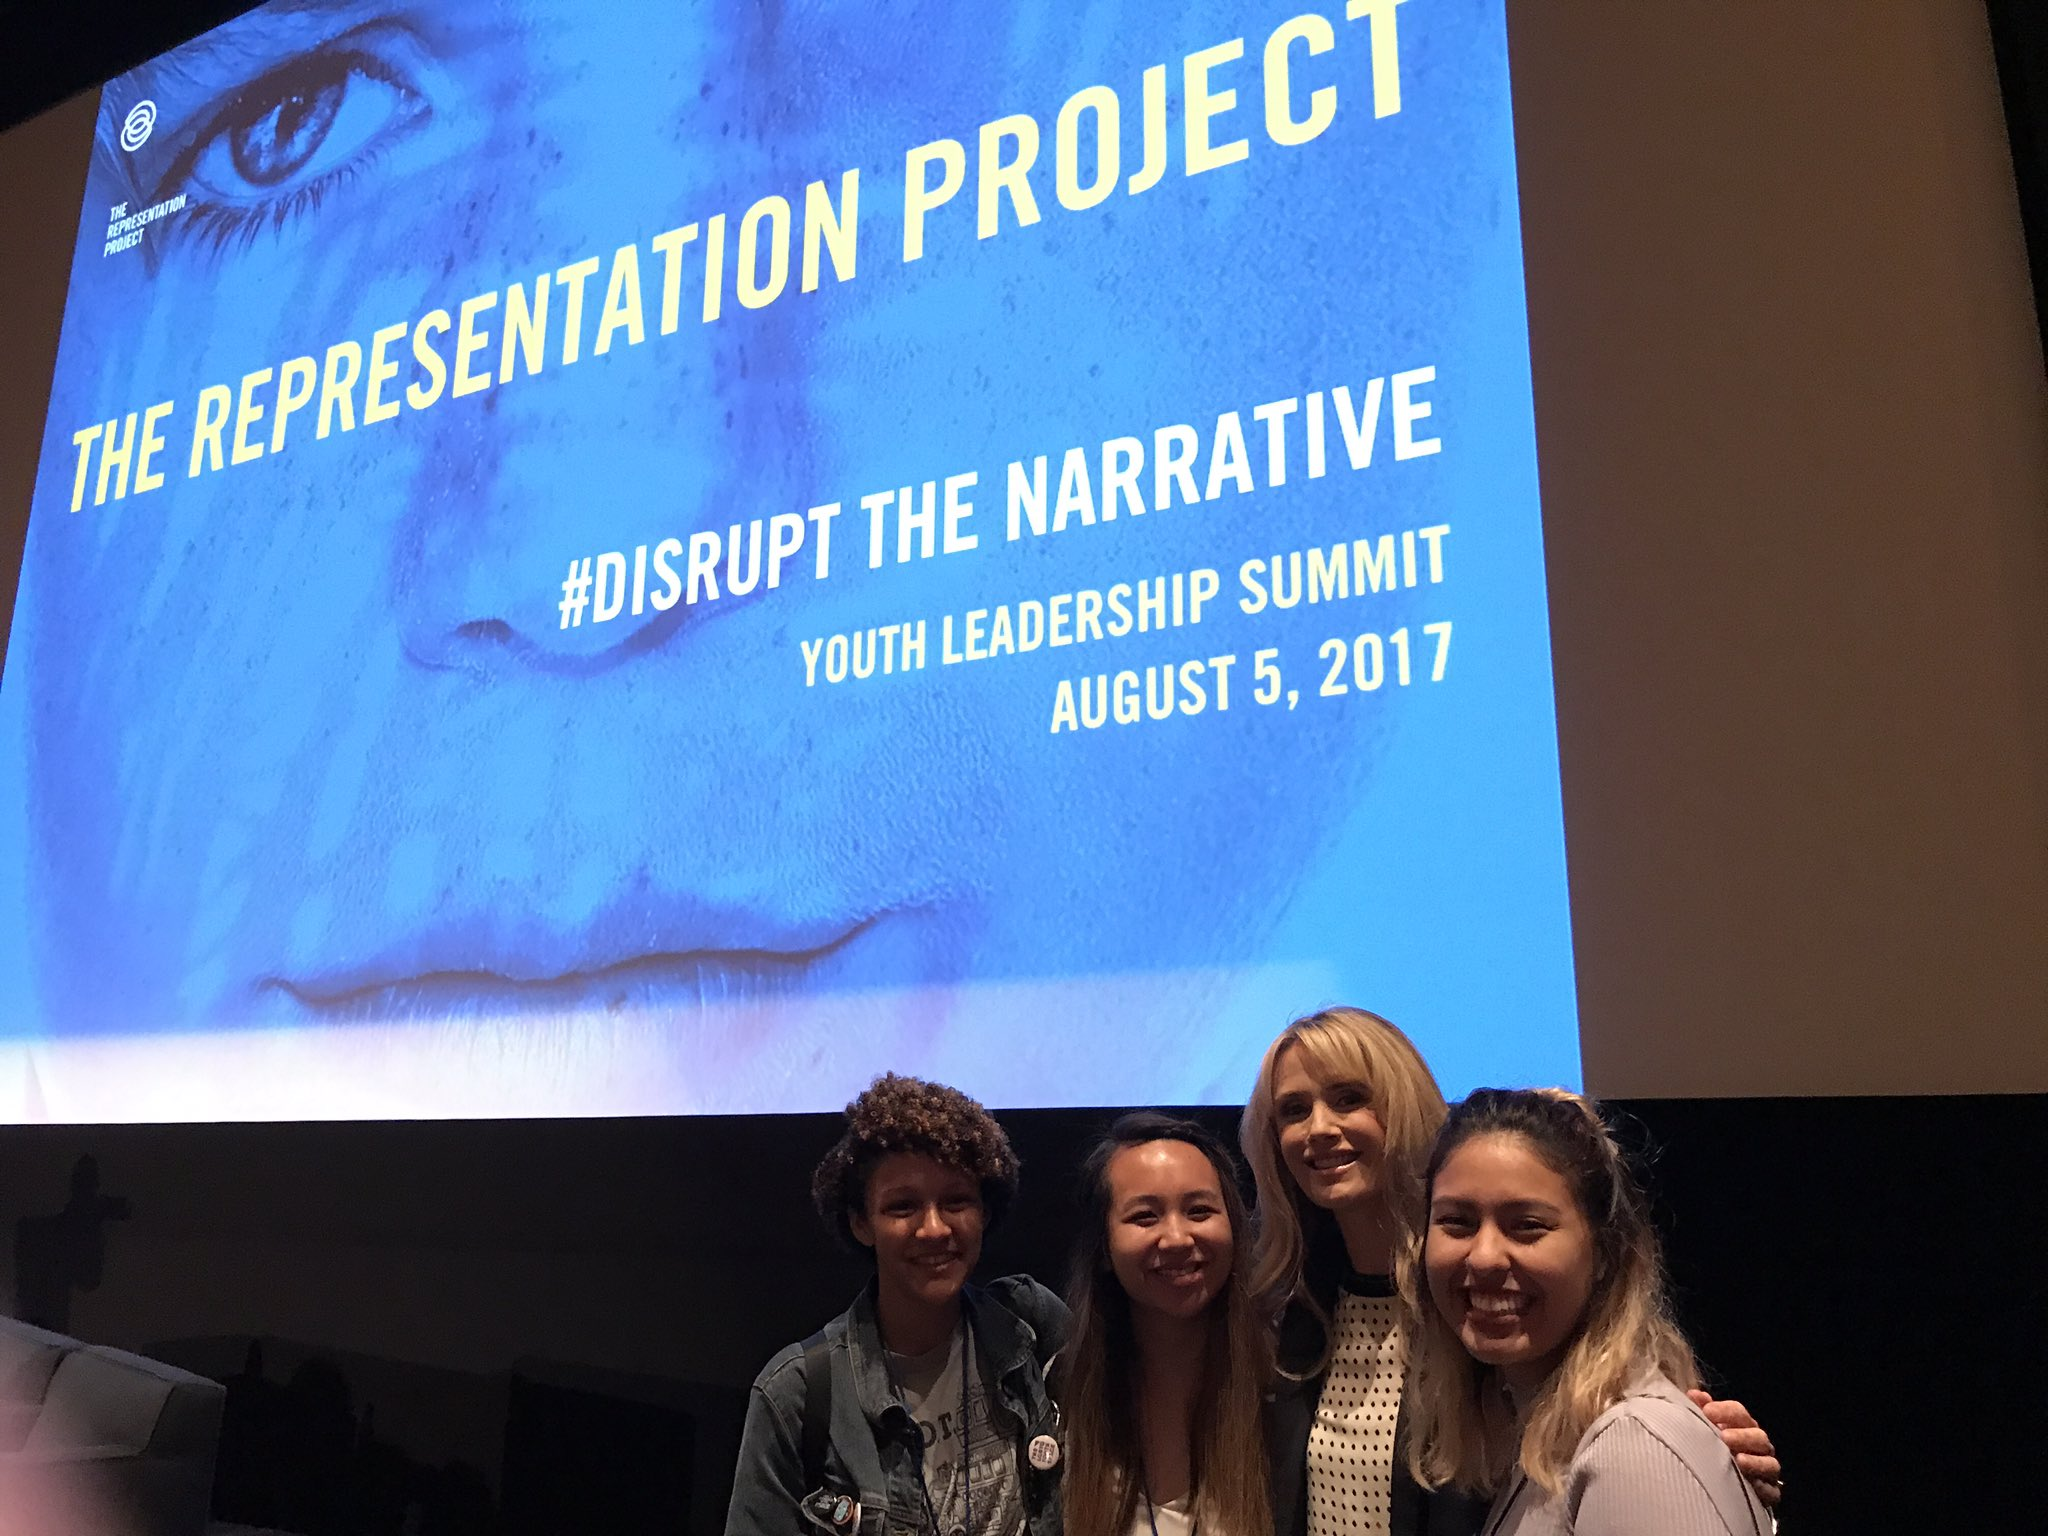 """""""We need to find each other and support each other to create social change!"""" #DisruptTheNarrative @TheRepProject https://t.co/nmq41RCfMP"""